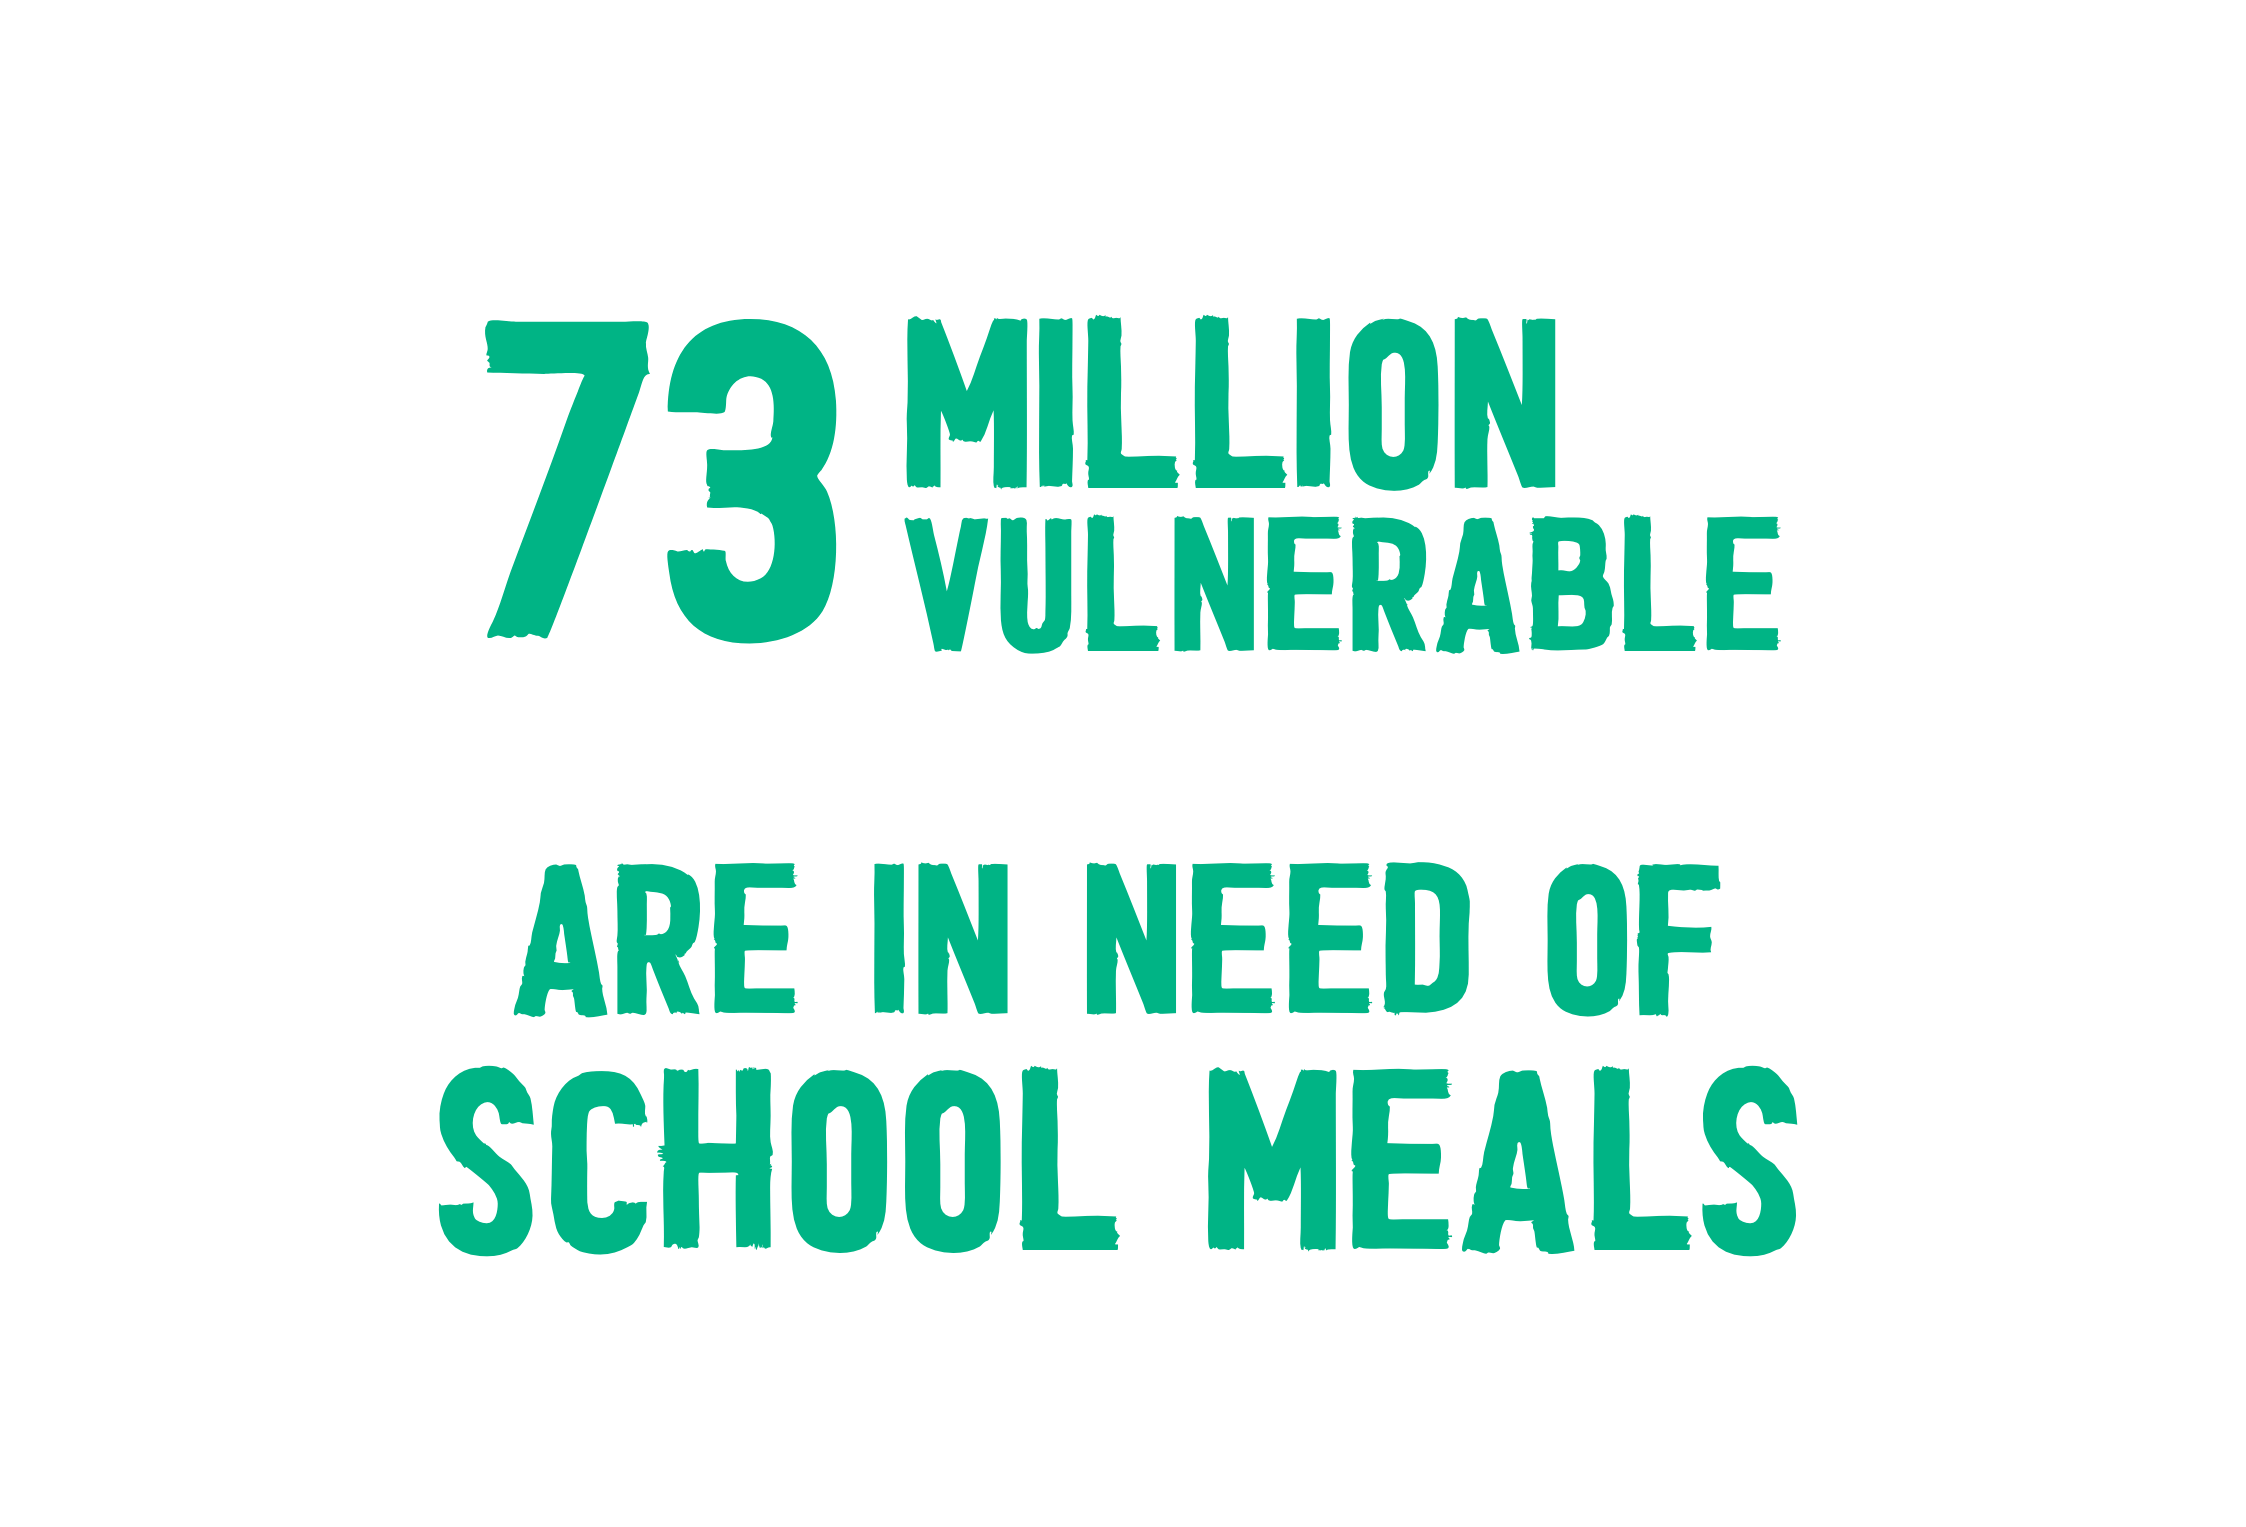 73 million vulnerable primary school aged children are in need of school meals